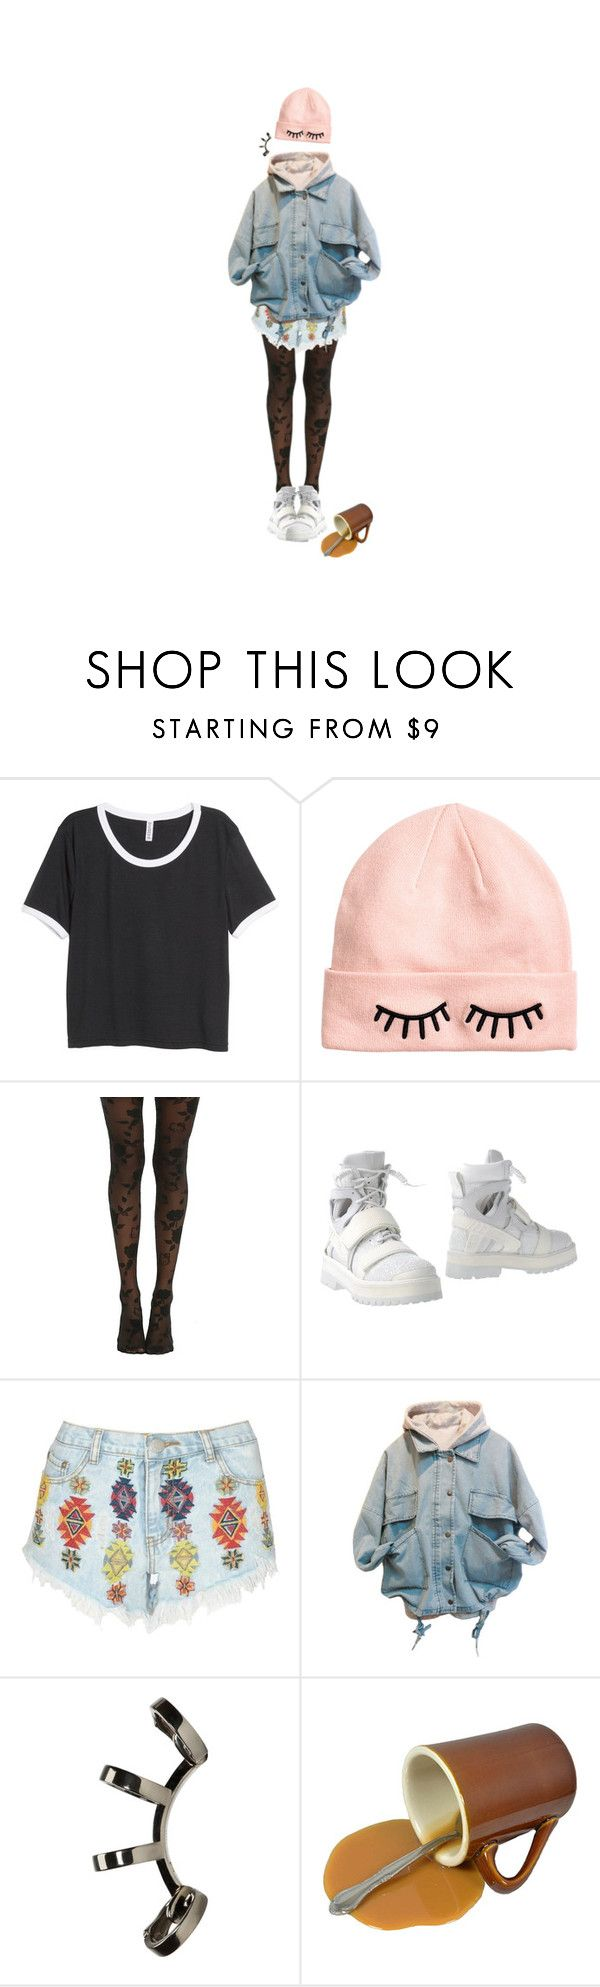 """""""you mean you really like me like that?"""" by aboutadaughter ❤ liked on Polyvore featuring H&M, Hello Kitty, Lipsy and Repossi"""